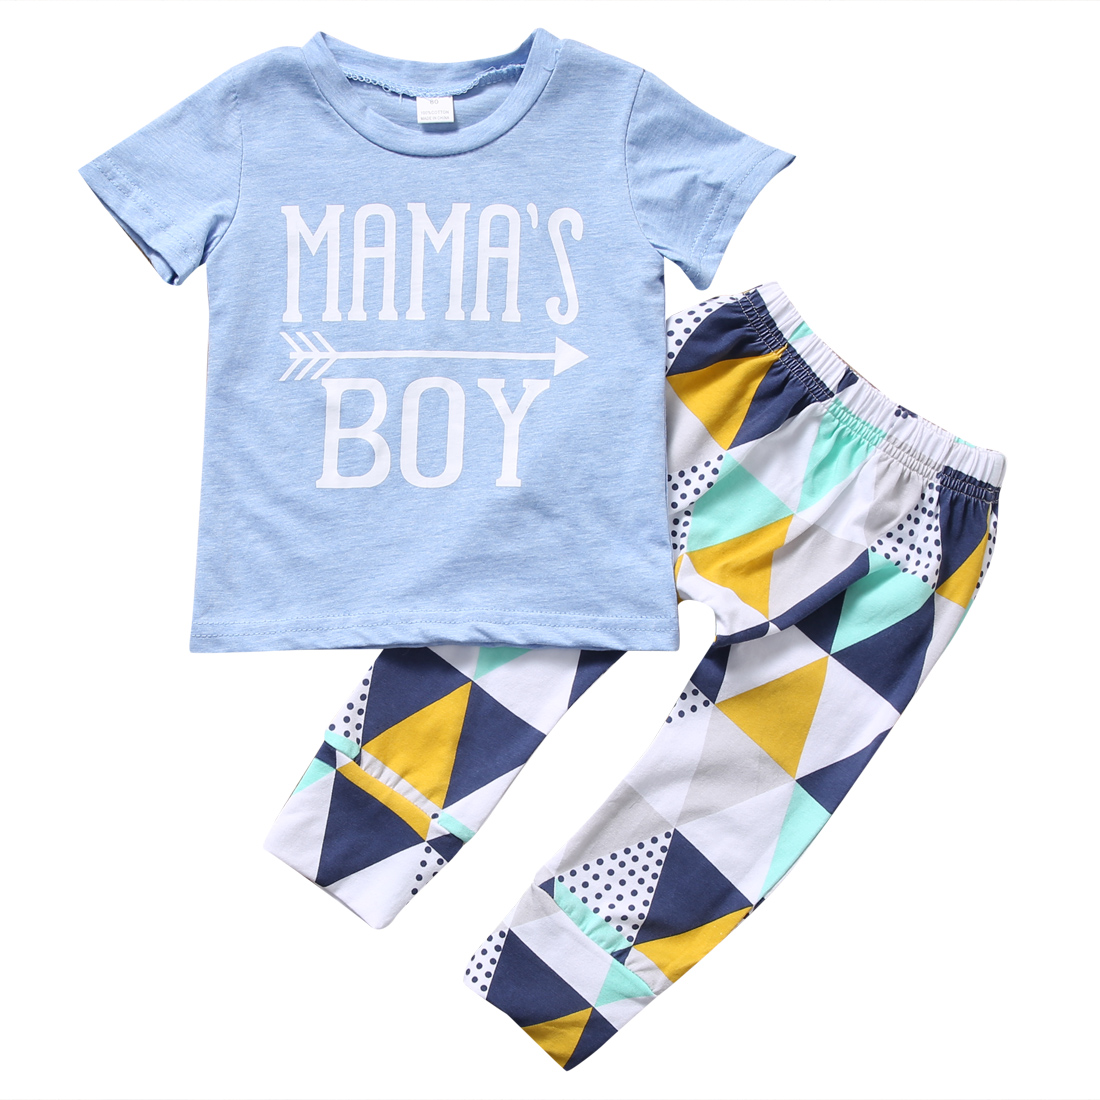 2PCS Newborn Baby Boys Outfits T-shirt Tops+ Pants Sets Clothes Summer Short Sleeve Mama Boy Print Tees Casual Clothes teen boy tops t shirt 2017 new all star boys camisetas 3d t shirt print short sleeve curry james kobe durant mj children